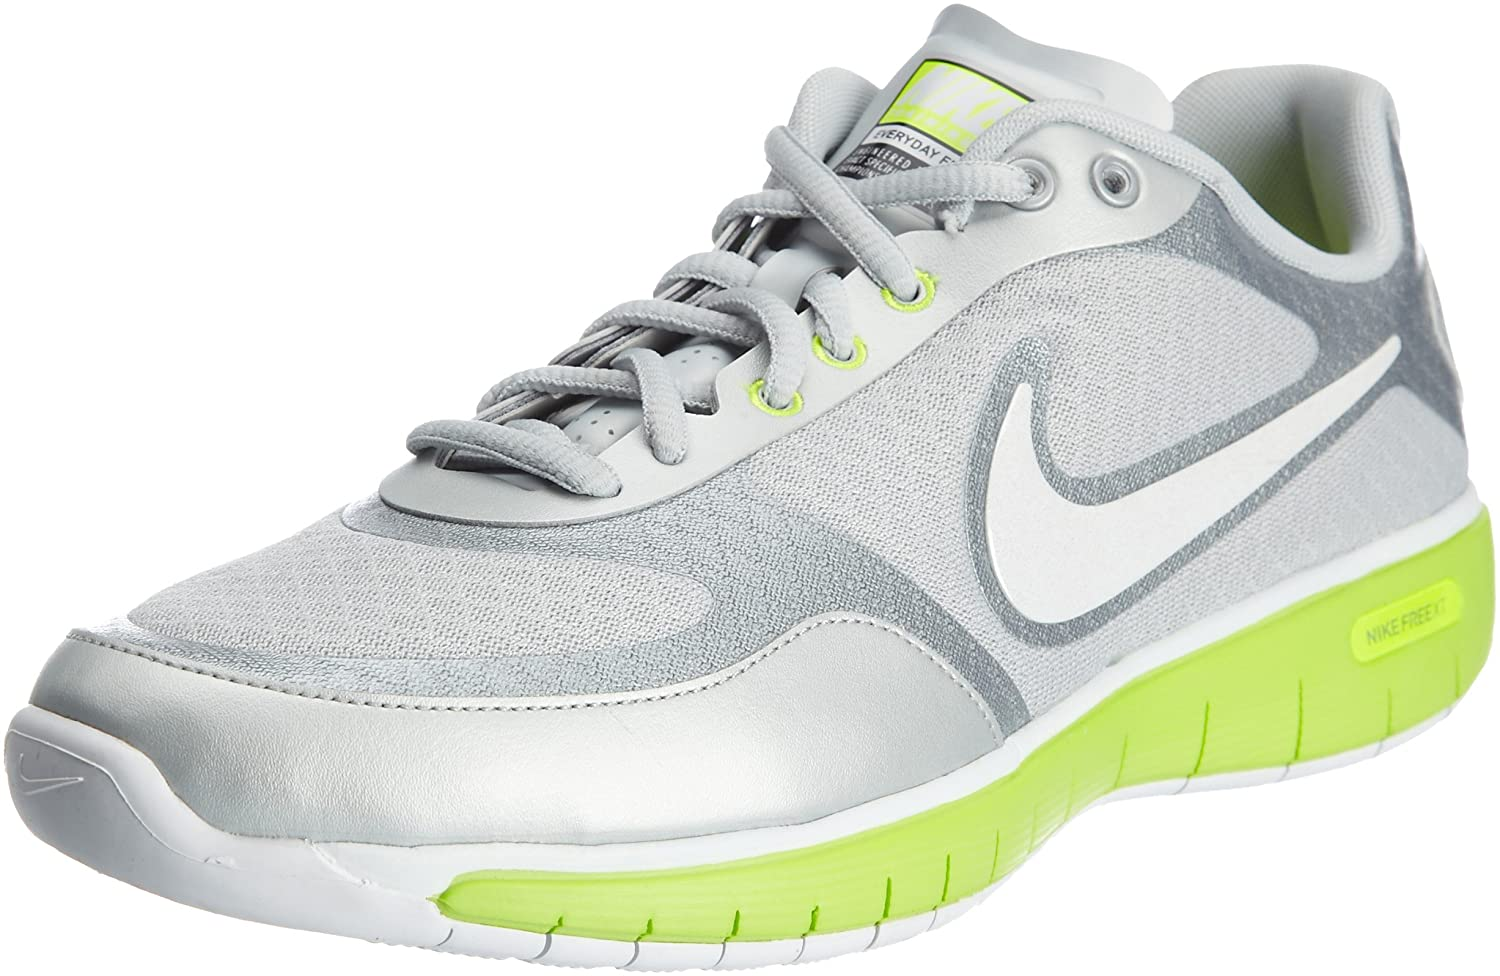 wholesale dealer 6244a 0c495 Nike Free XT Everyday Fit Women's Shoes